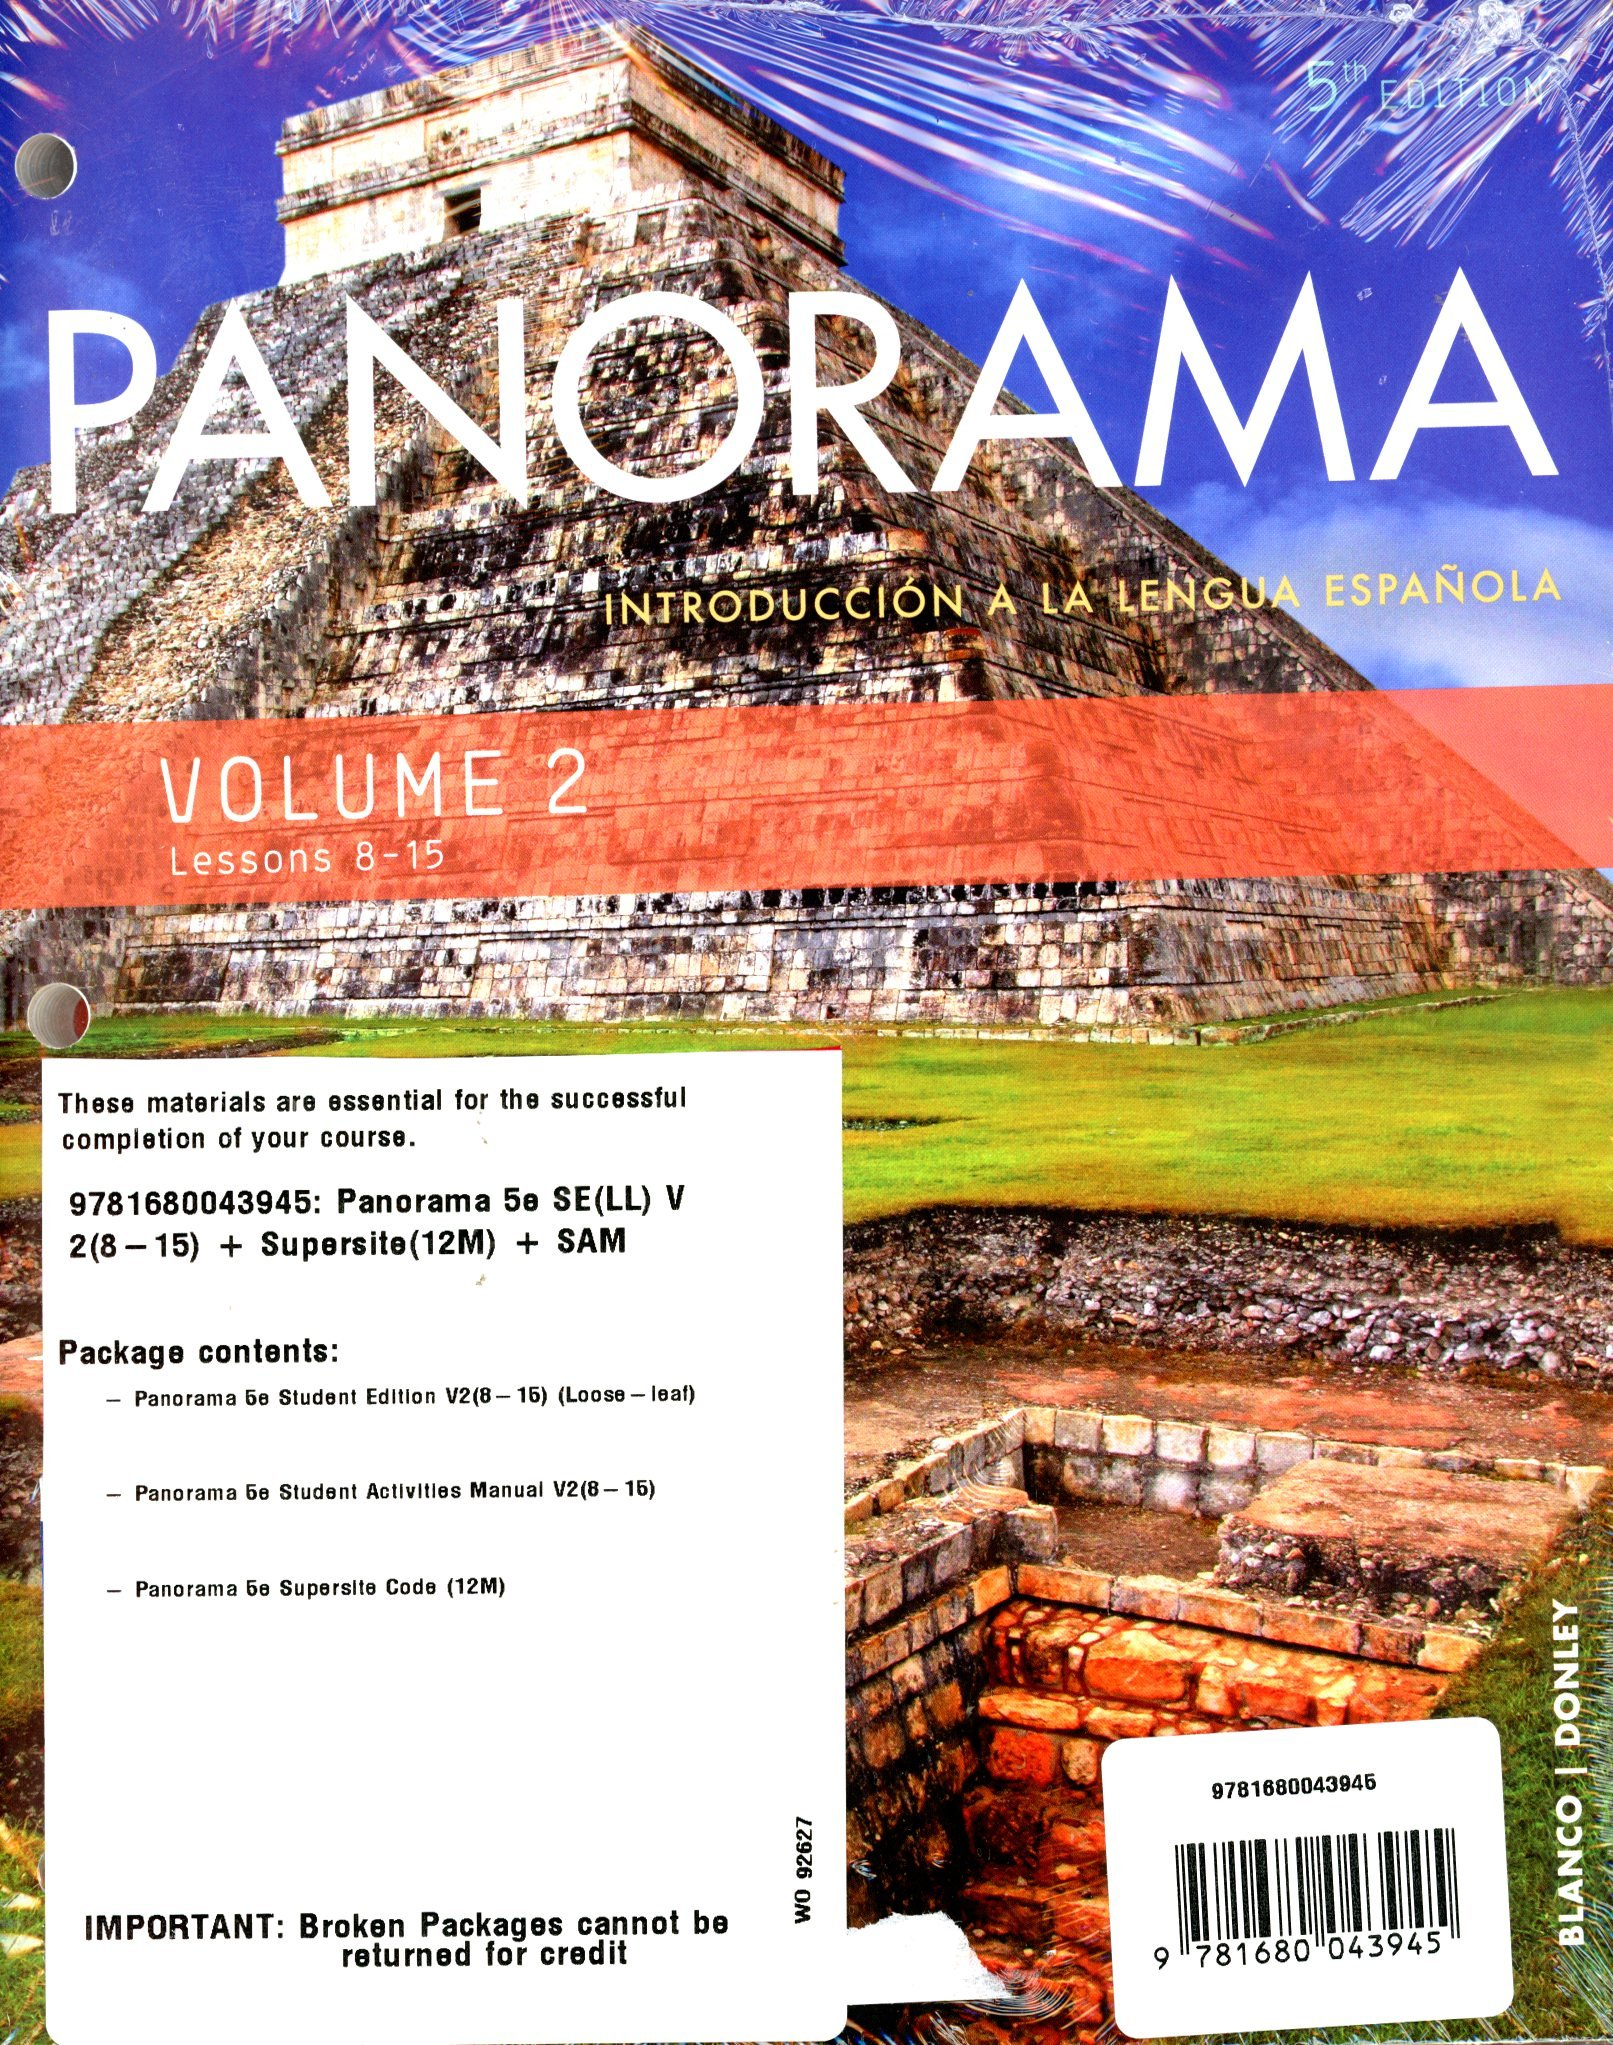 Panorama 5th ed looseleaf vol 2 text chp 8 15 w supersite12m panorama 5th ed looseleaf vol 2 text chp 8 15 w supersite12m and vol 2 student activities manual jos a blanco philip redwine donley fandeluxe Choice Image